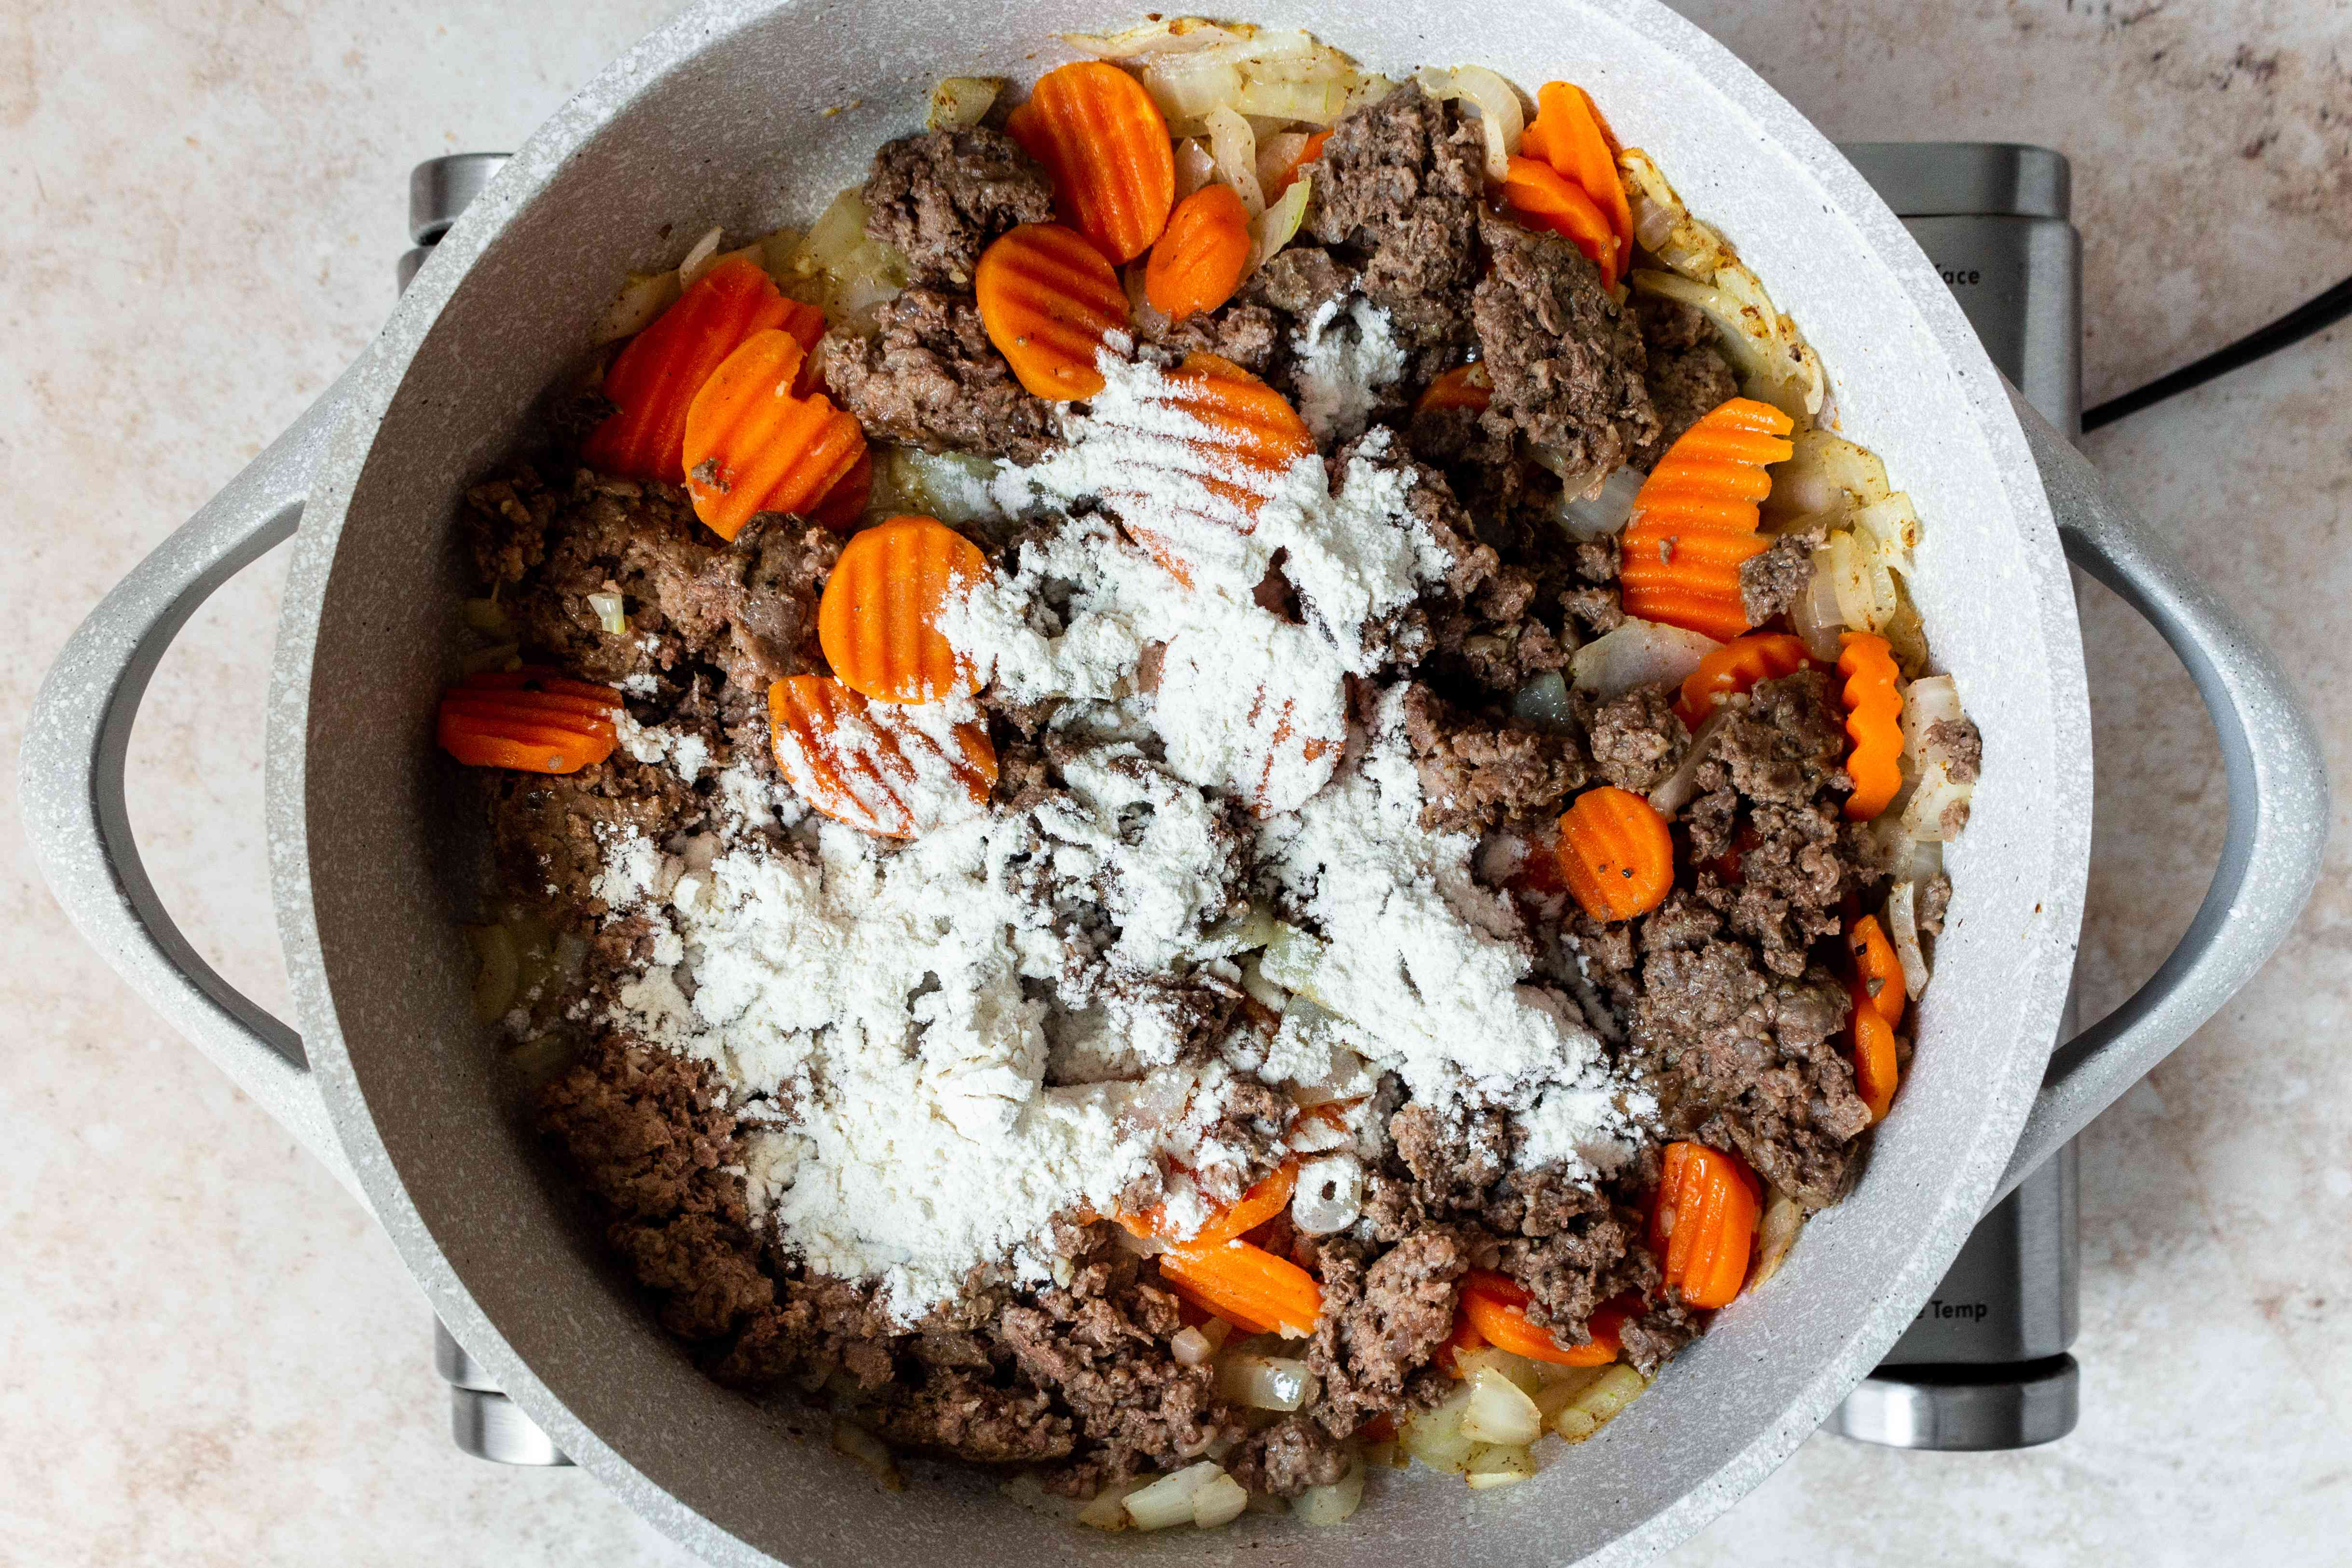 flour added to the meat and vegetable mixture in the skillet